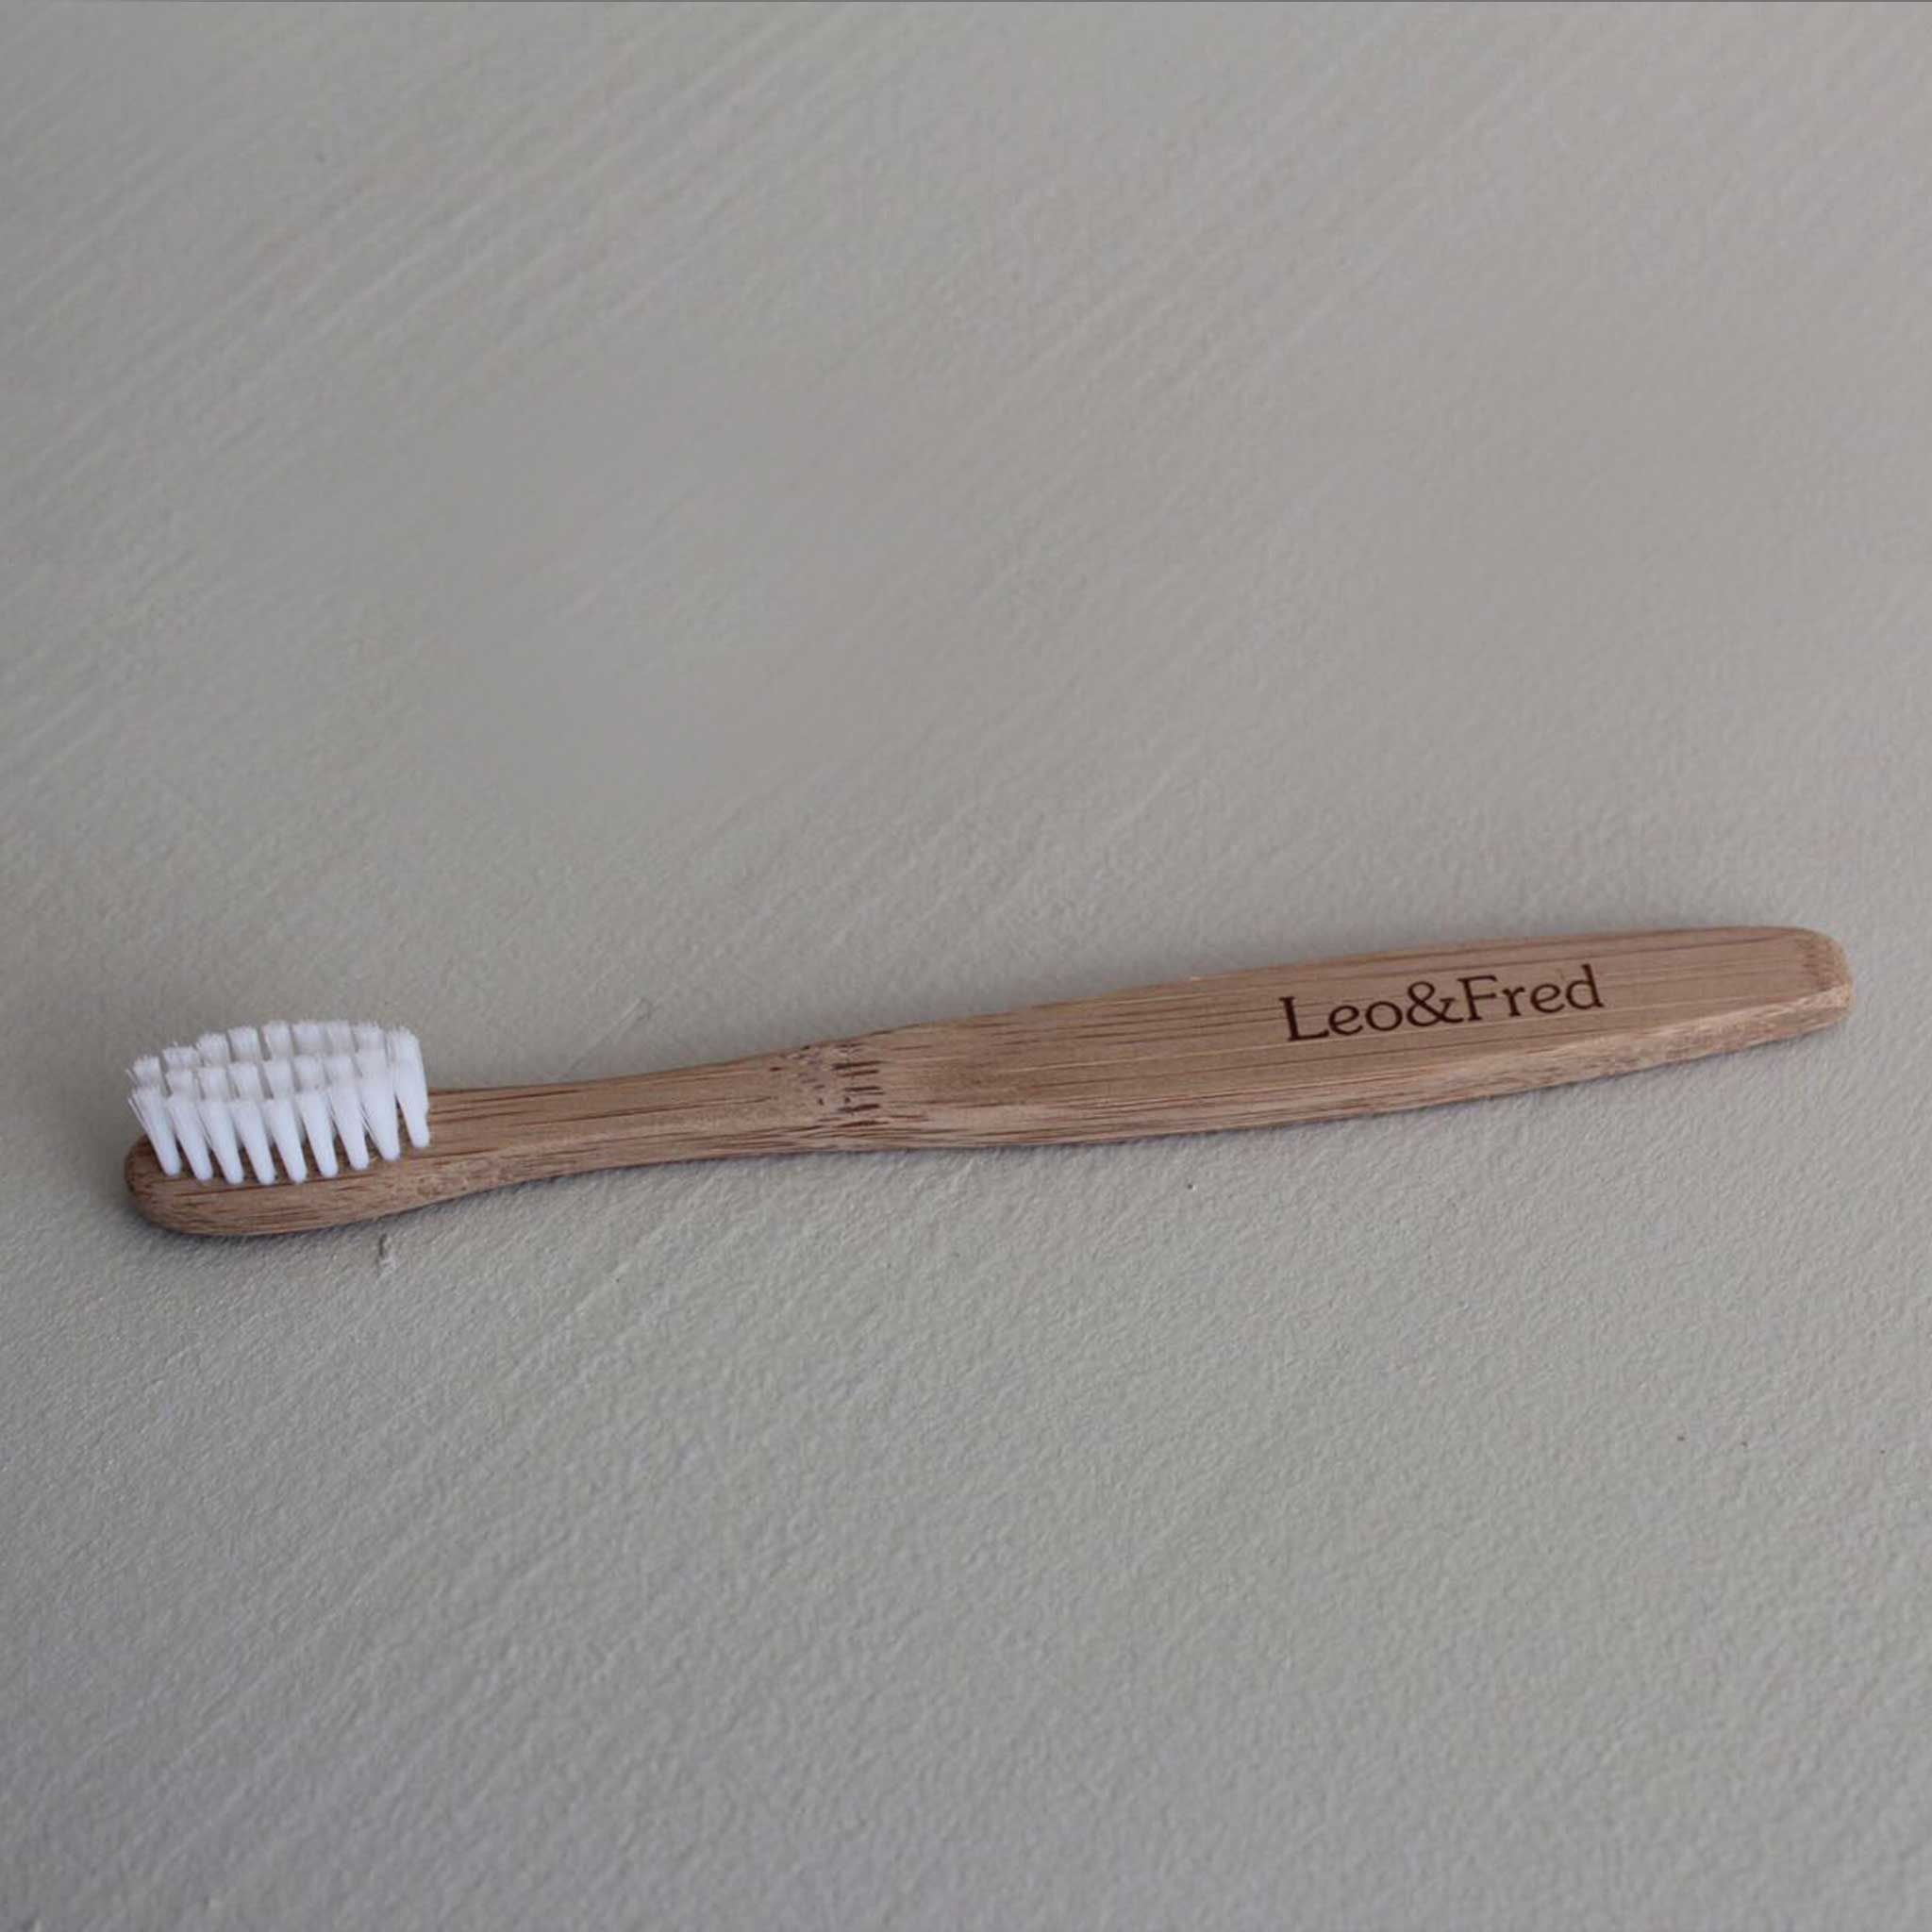 LEO & FRED Wooden Toothbrush White